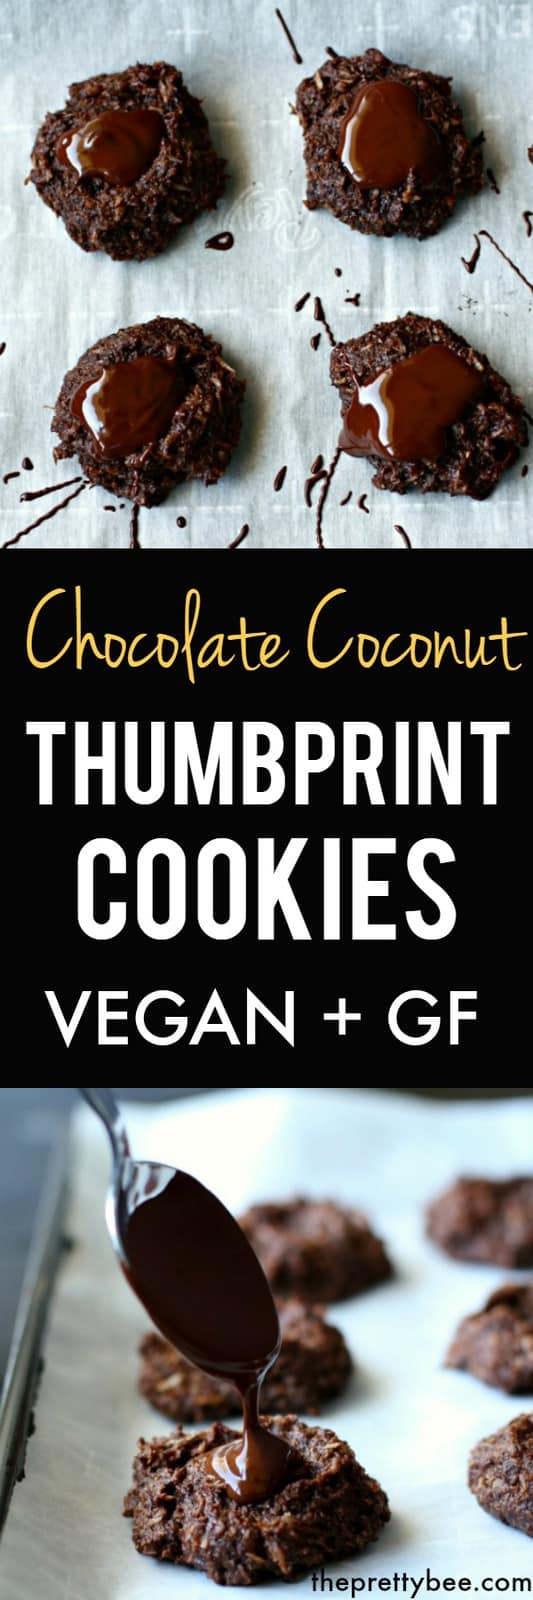 These rich chocolate coconut thumbprint cookies are grain free, vegan, and deliciously decadent! #vegan #grainfree #glutenfree #chocolate #dairyfree